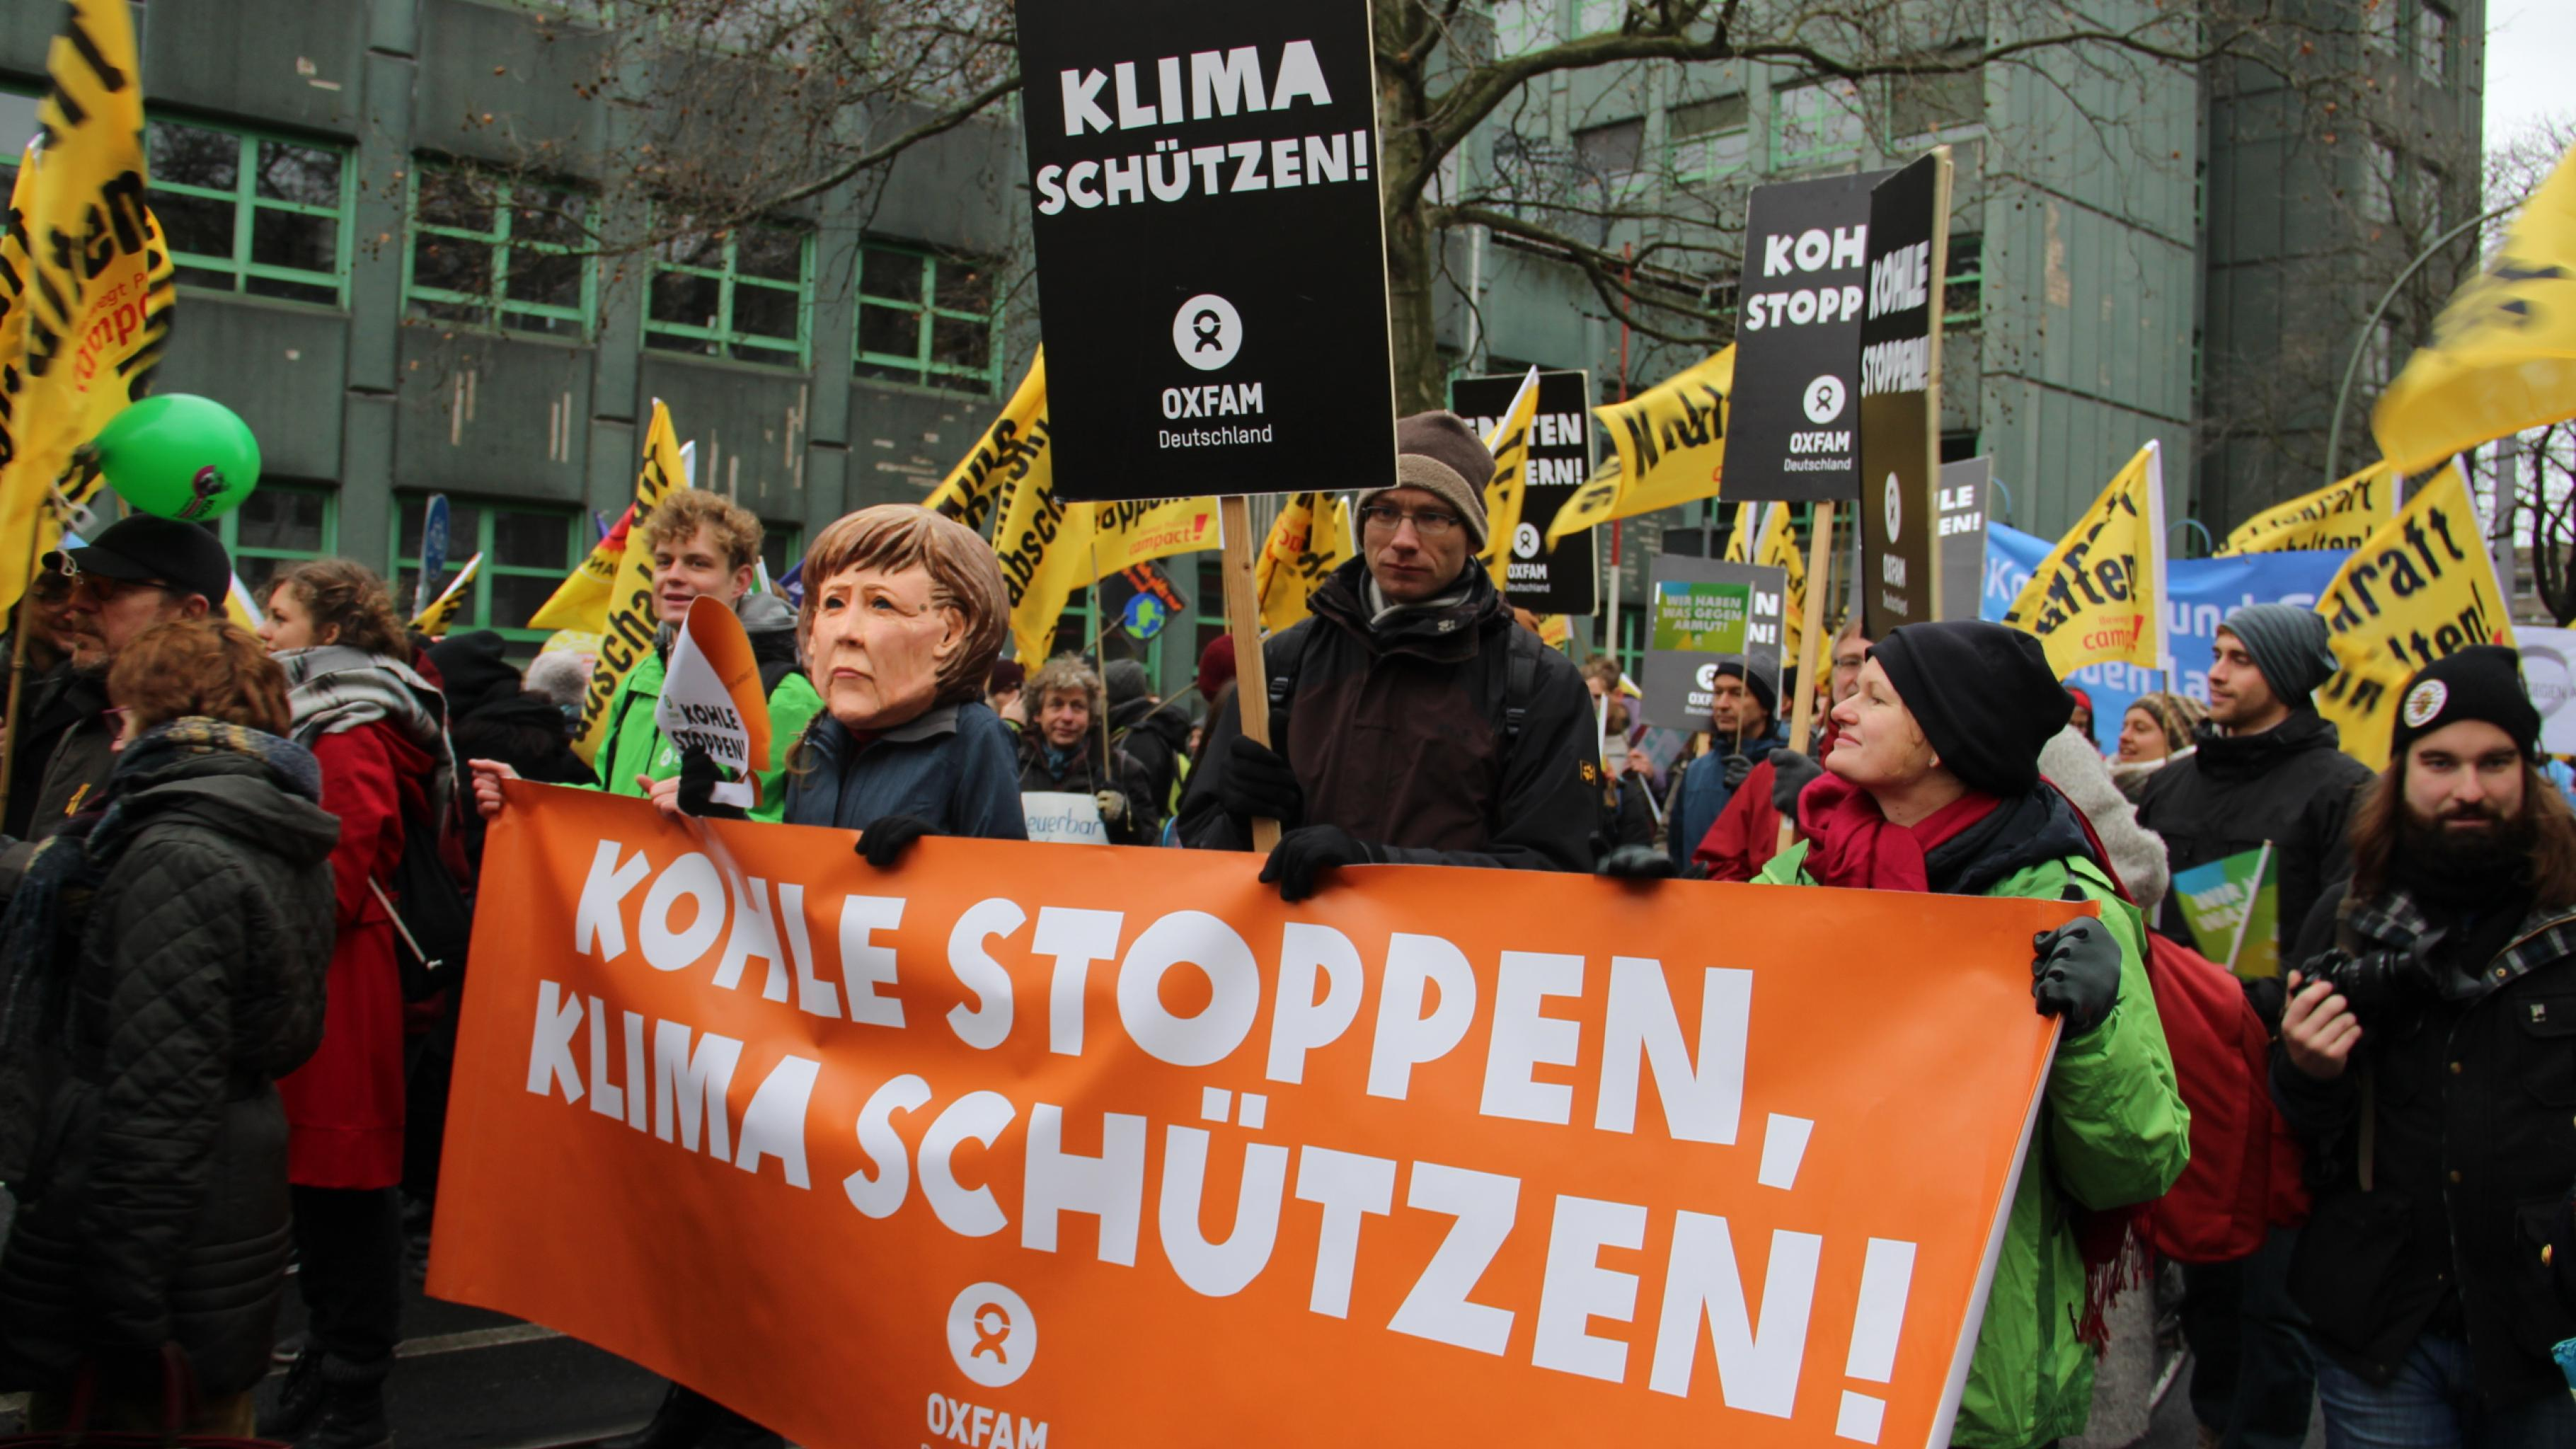 Demonstration zum Global Climate March in Berlin vor dem Pariser Klimagipfel